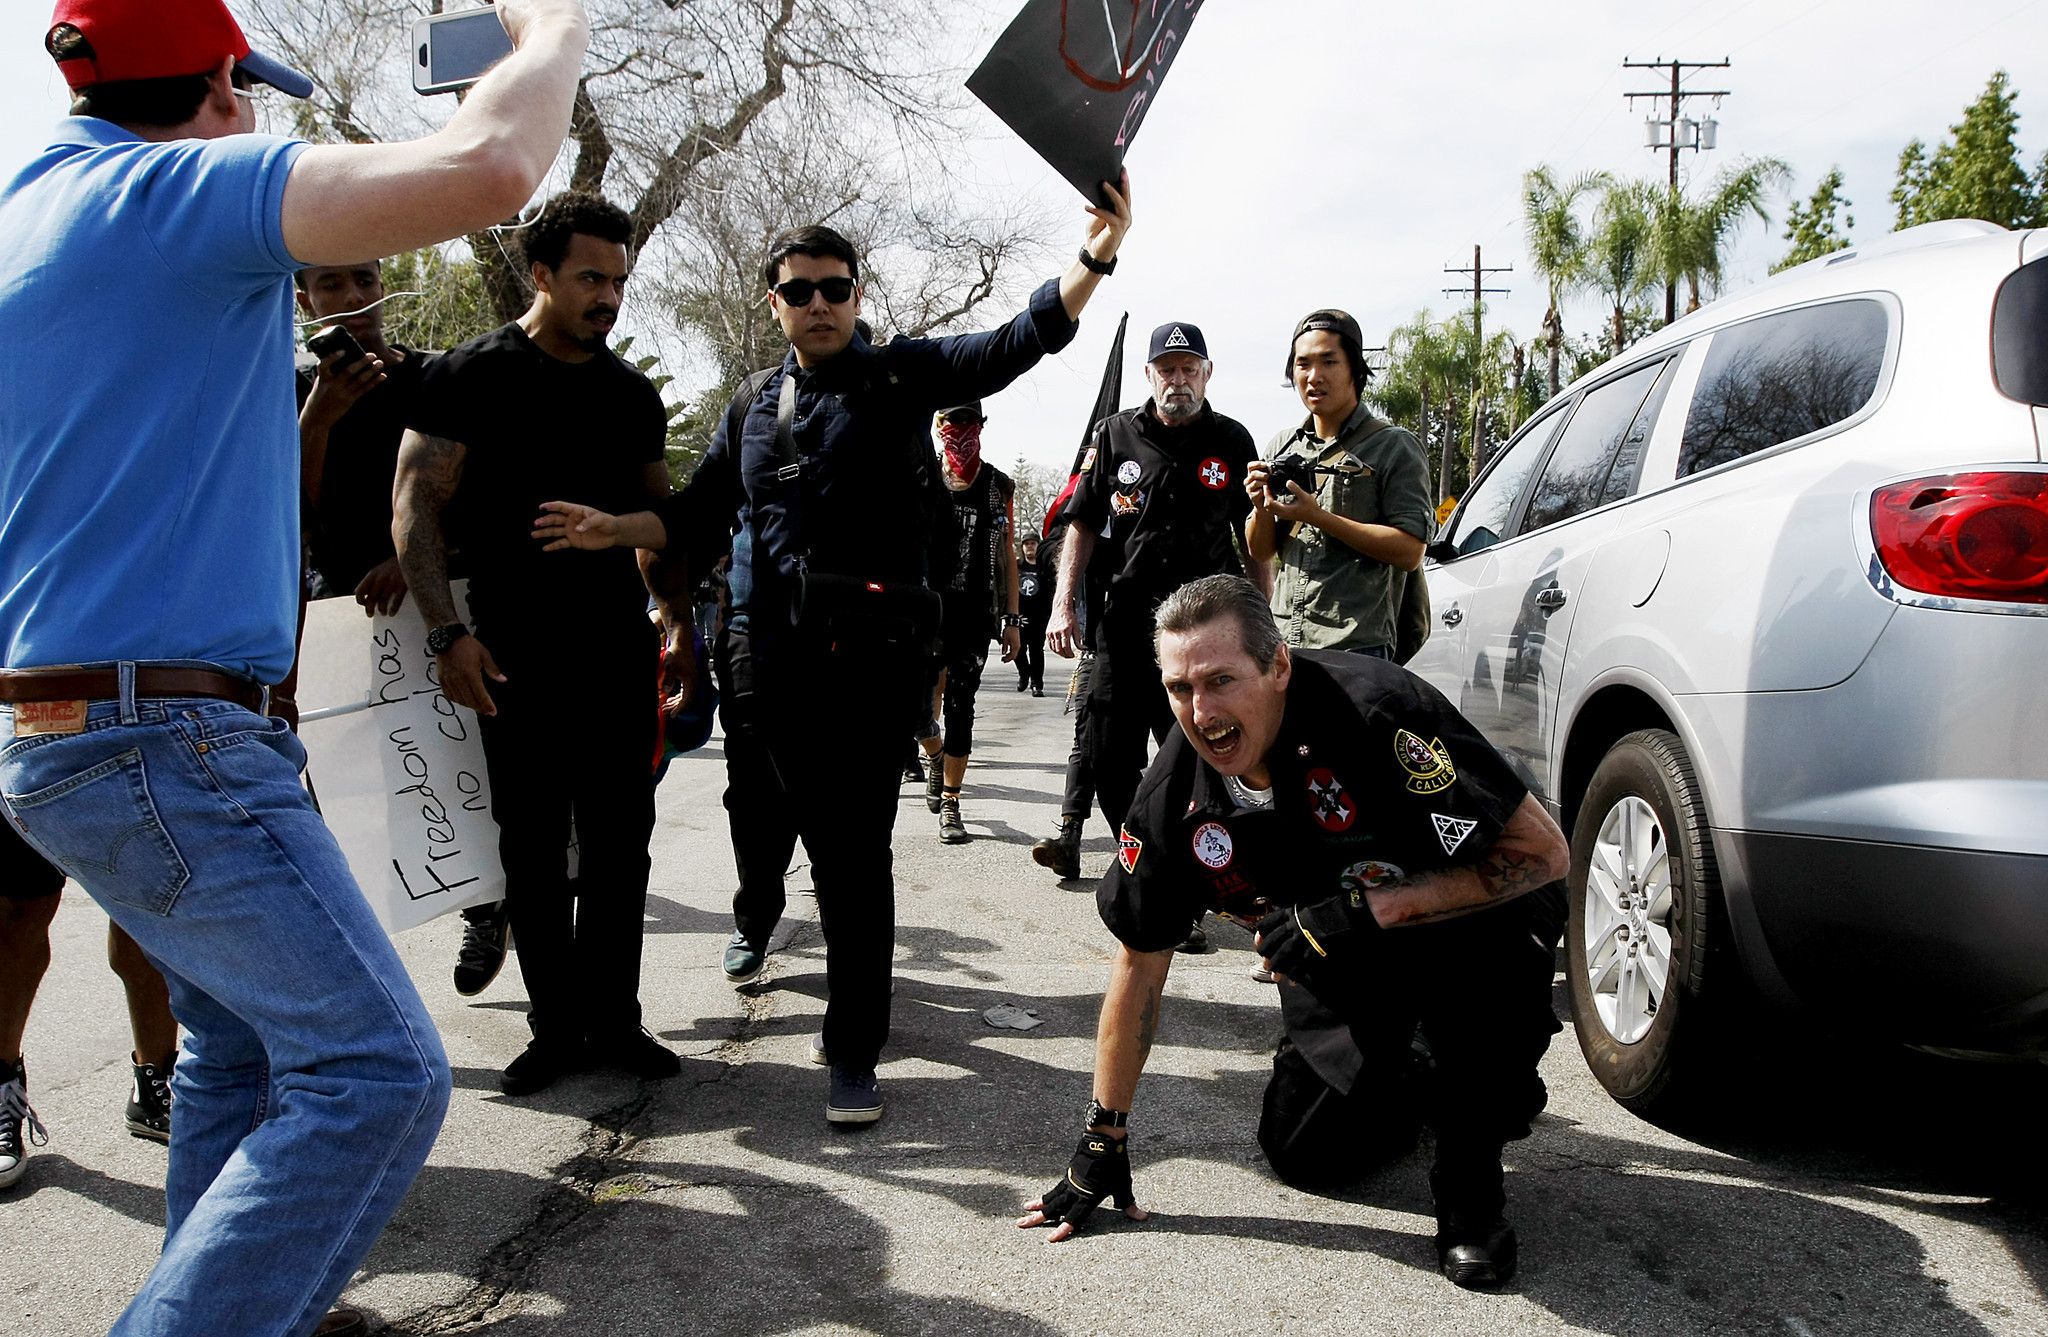 Criticism Of Anaheim Police Response To Kkk Rally Mounts